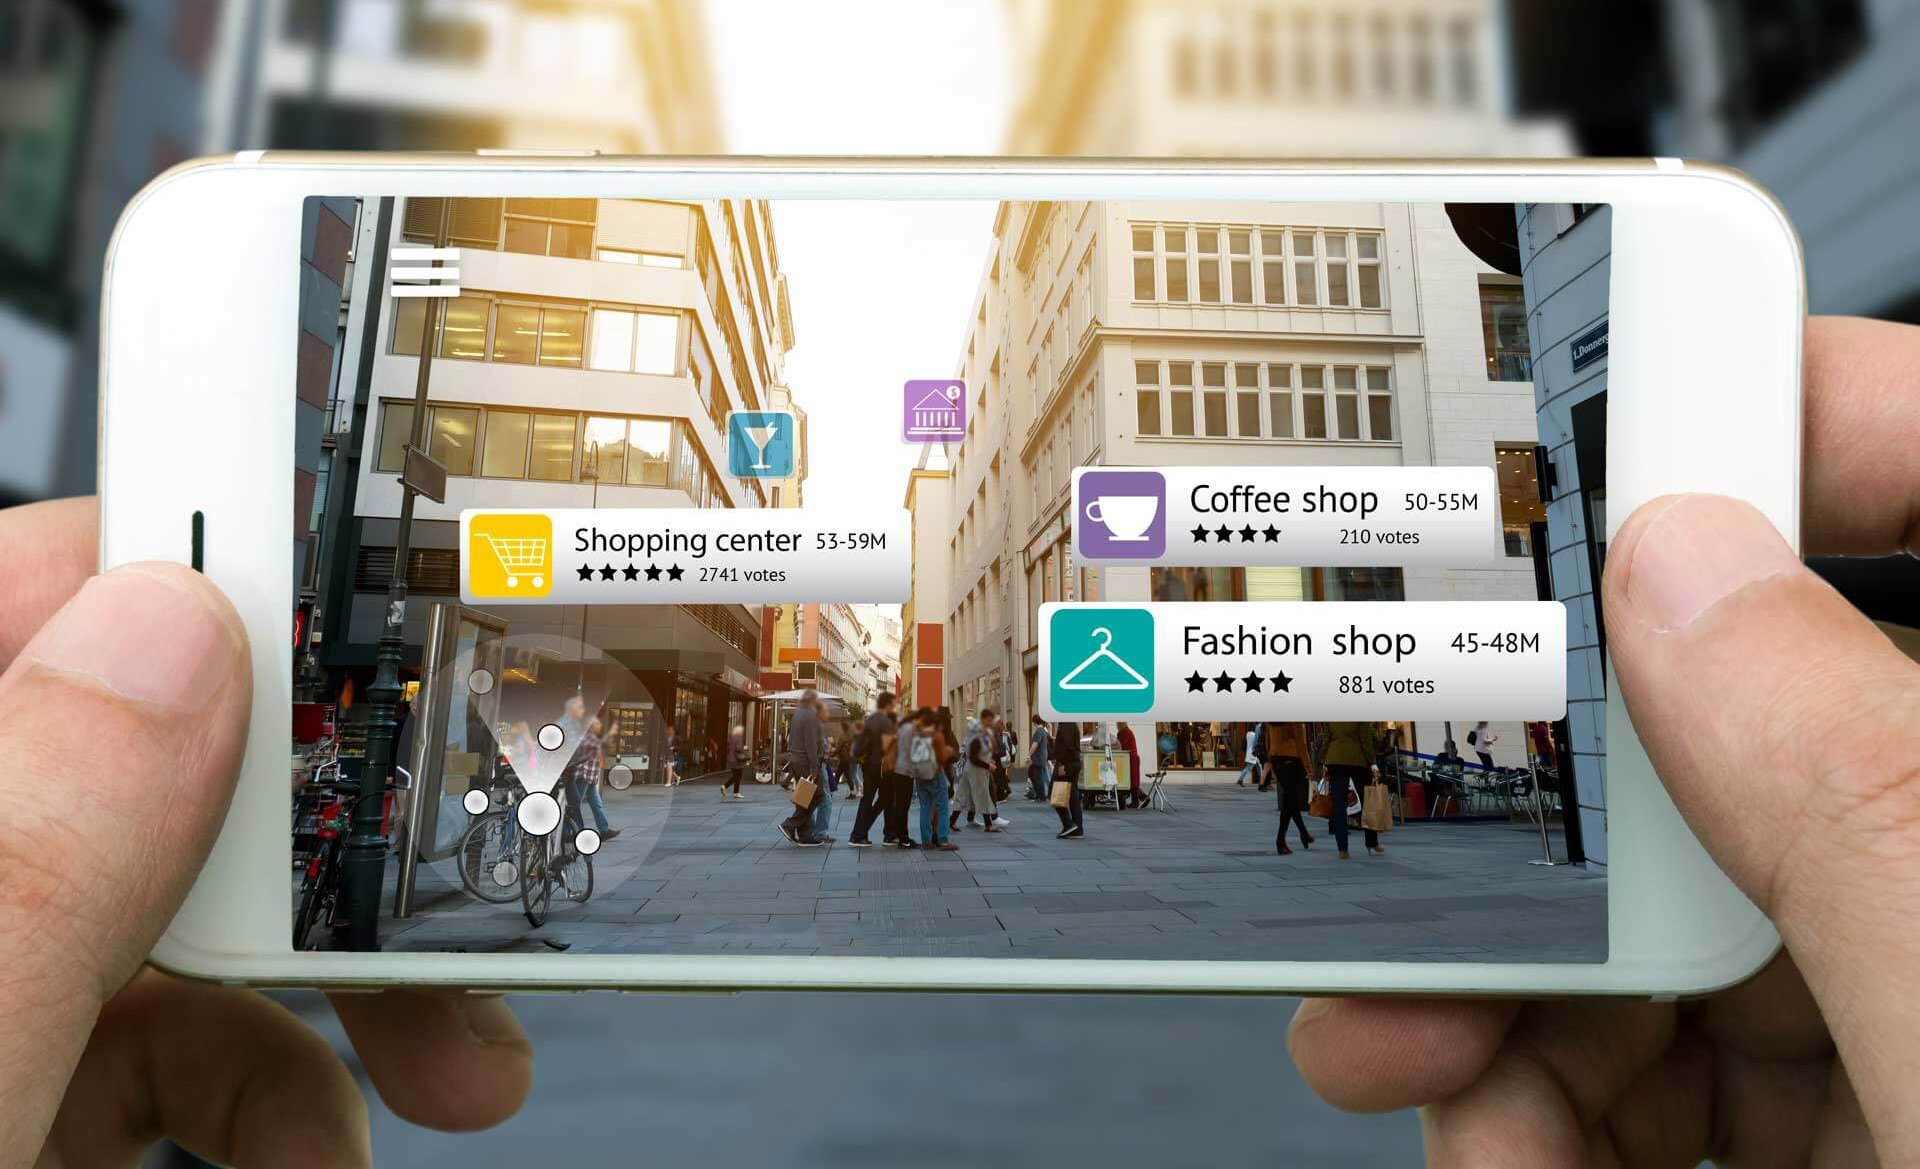 Augmented reality is one of the latest UX design trends